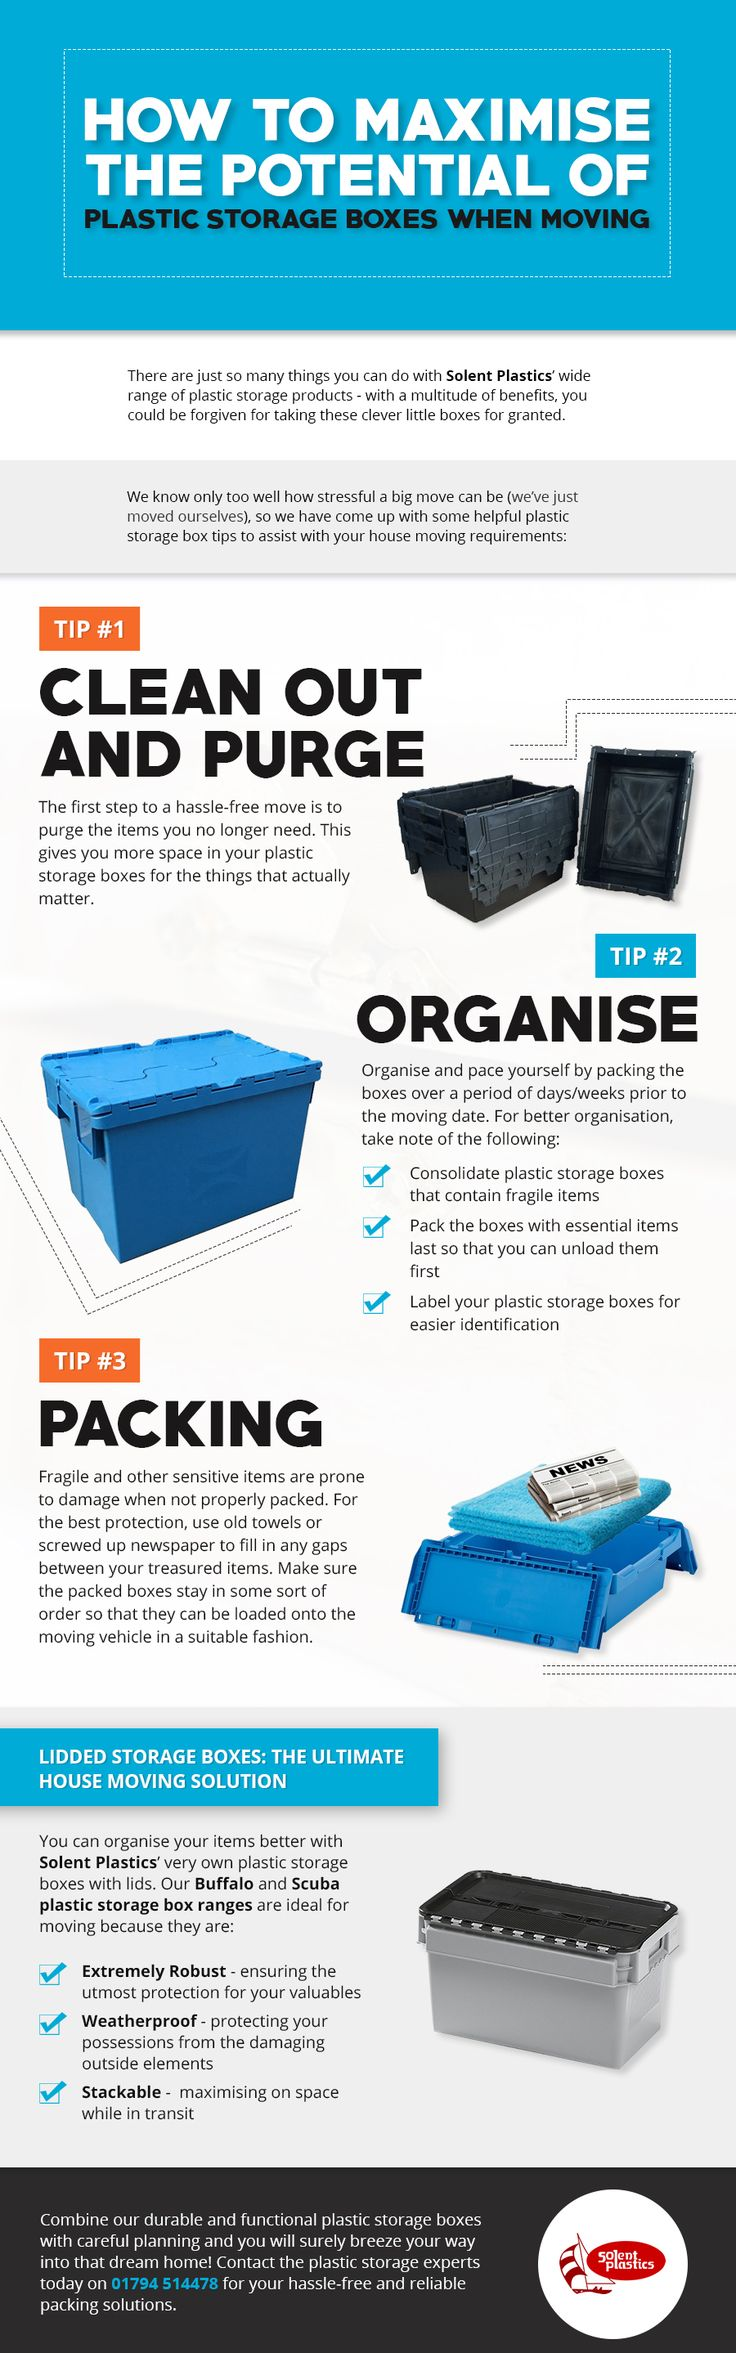 How to Maximise the Potential of Plastic Storage Boxes When Moving...